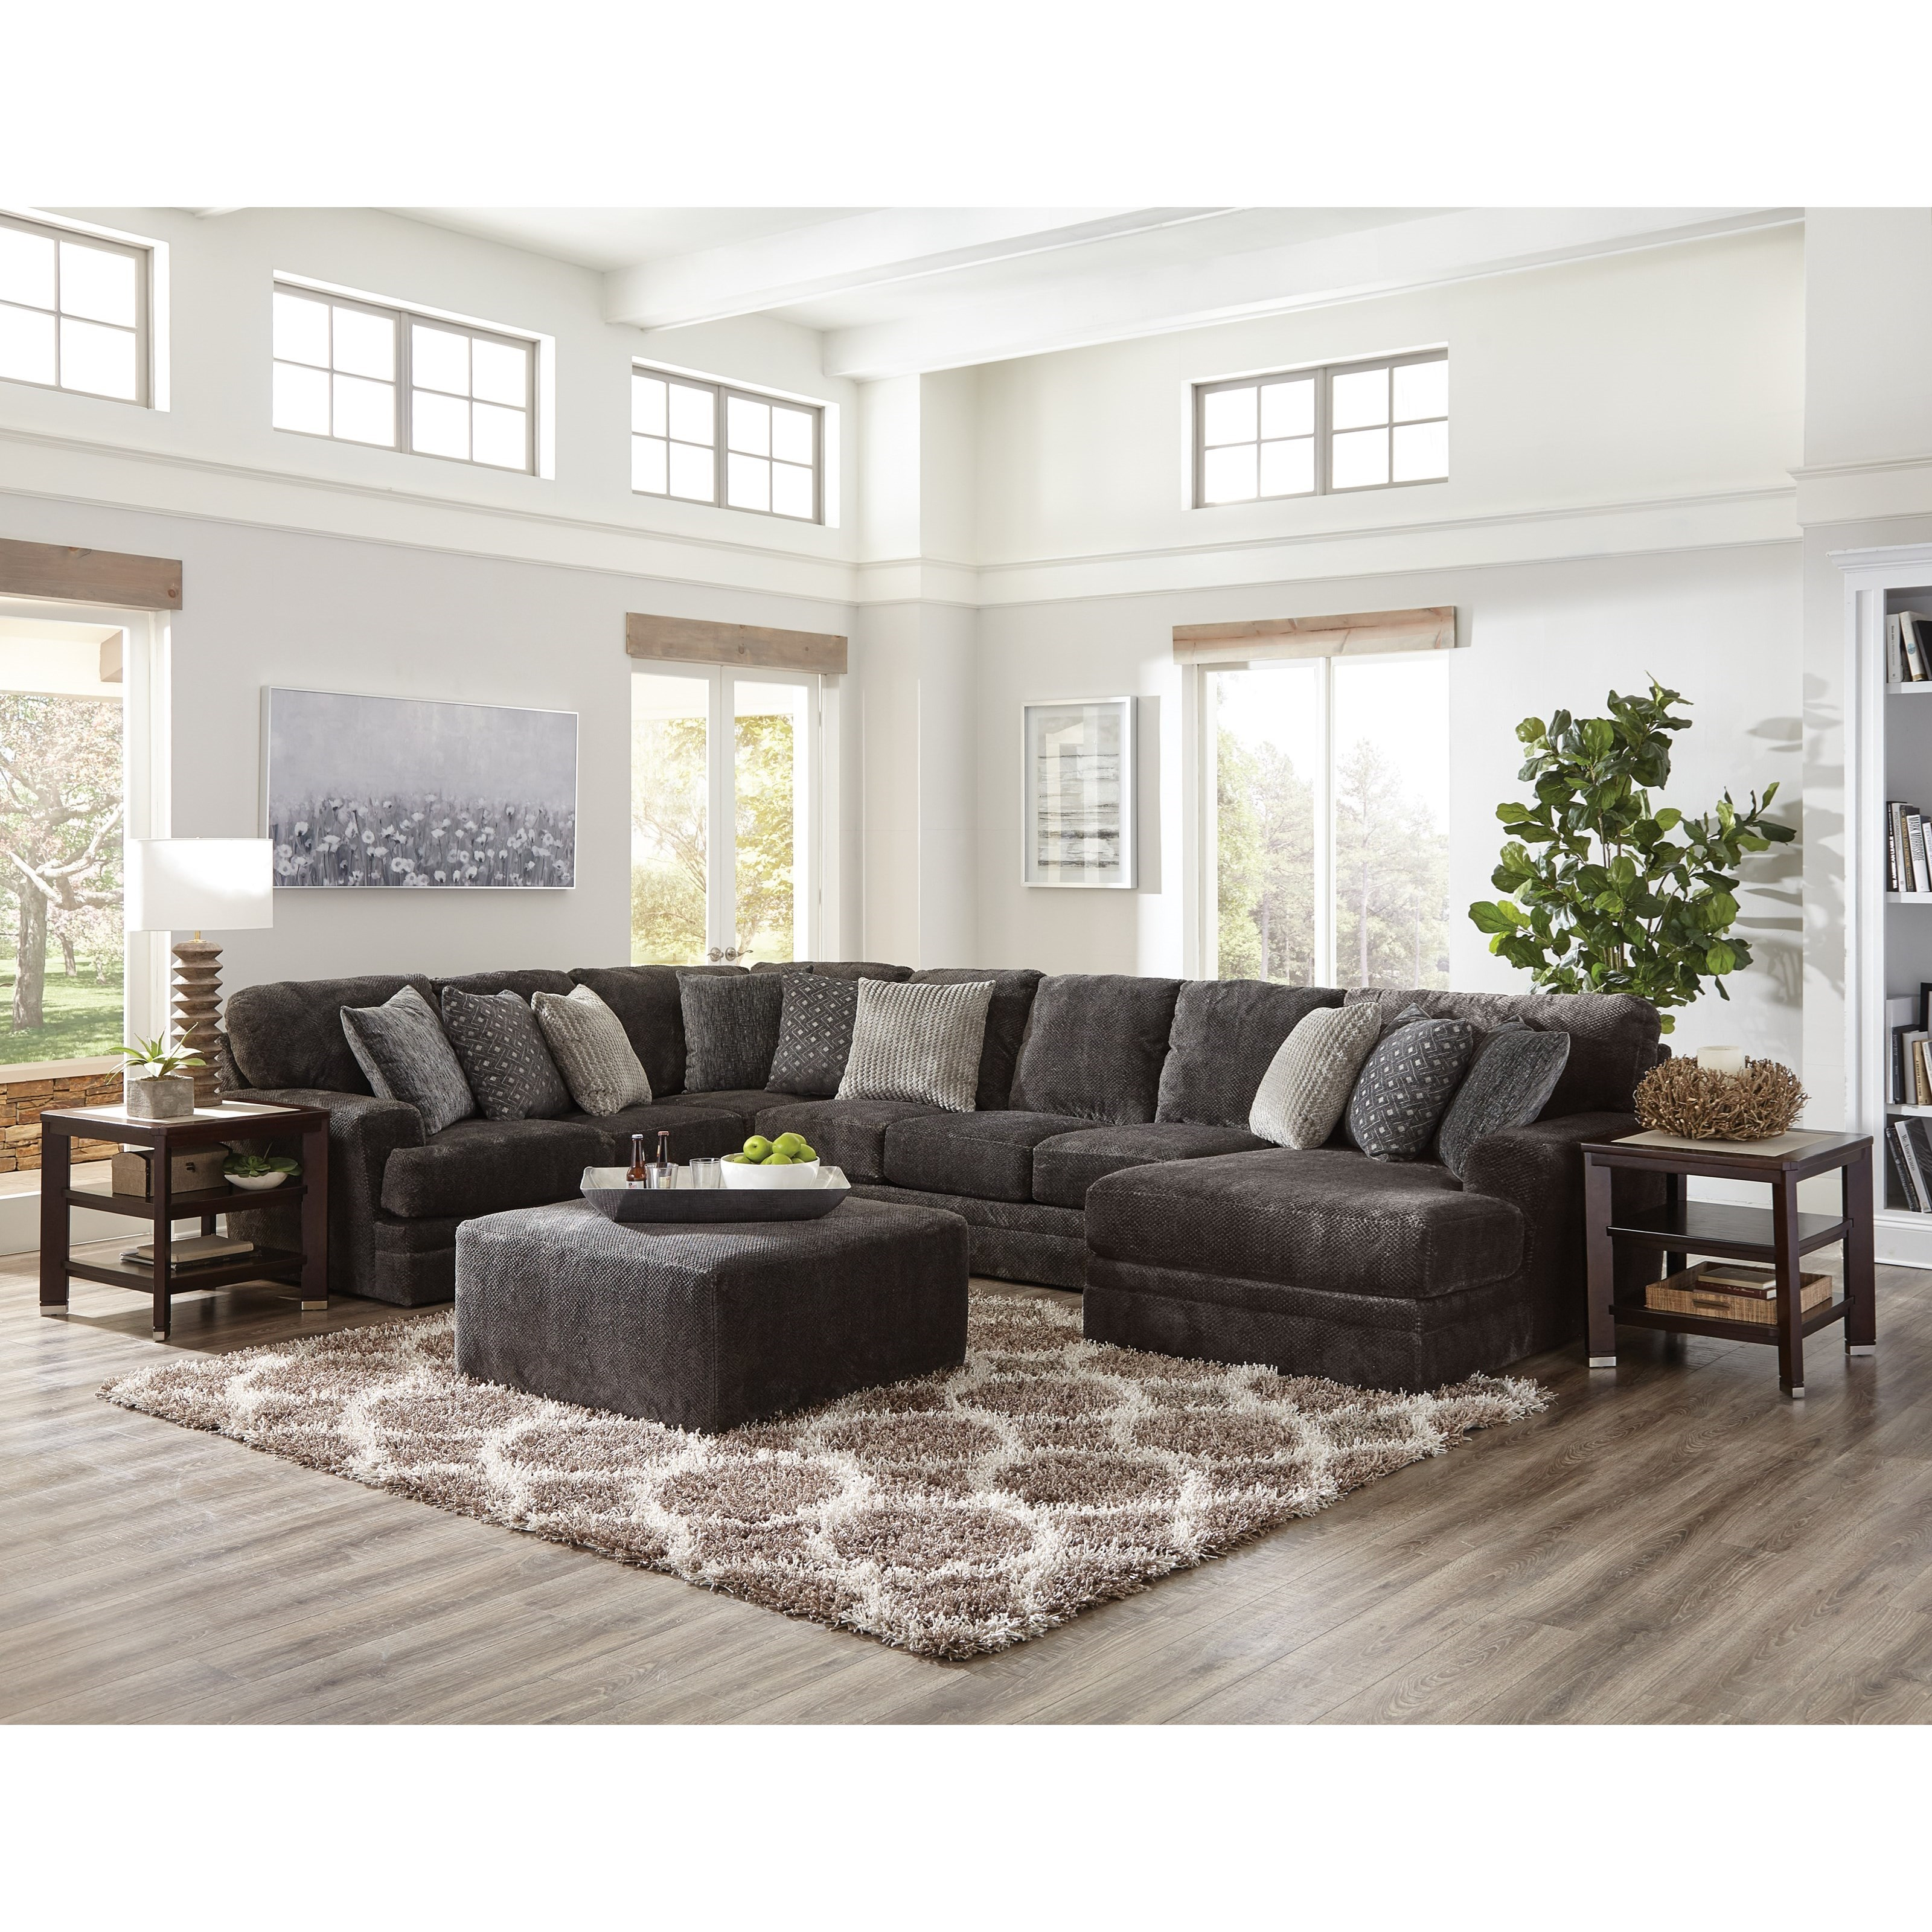 Mammoth Stationary Living Room Group by Jackson Furniture at Northeast Factory Direct